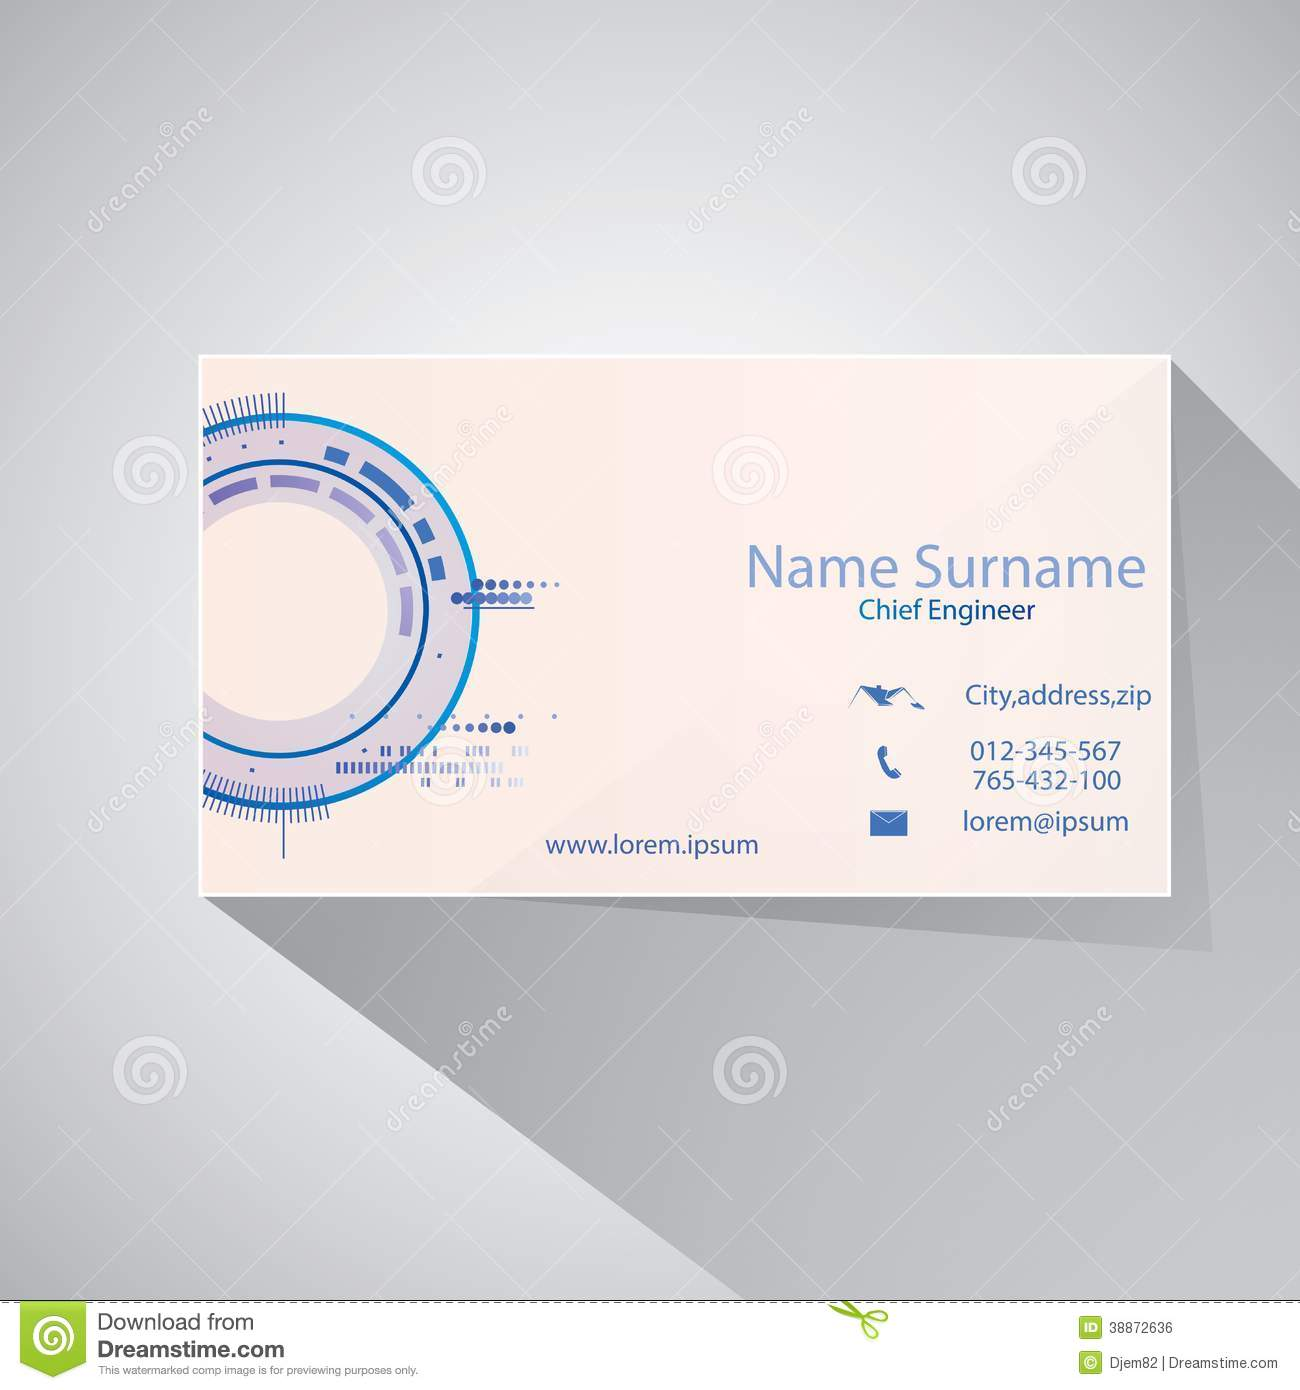 Technology engineer business card template stock vector image calling card of chief engineer royalty free stock image magicingreecefo Image collections